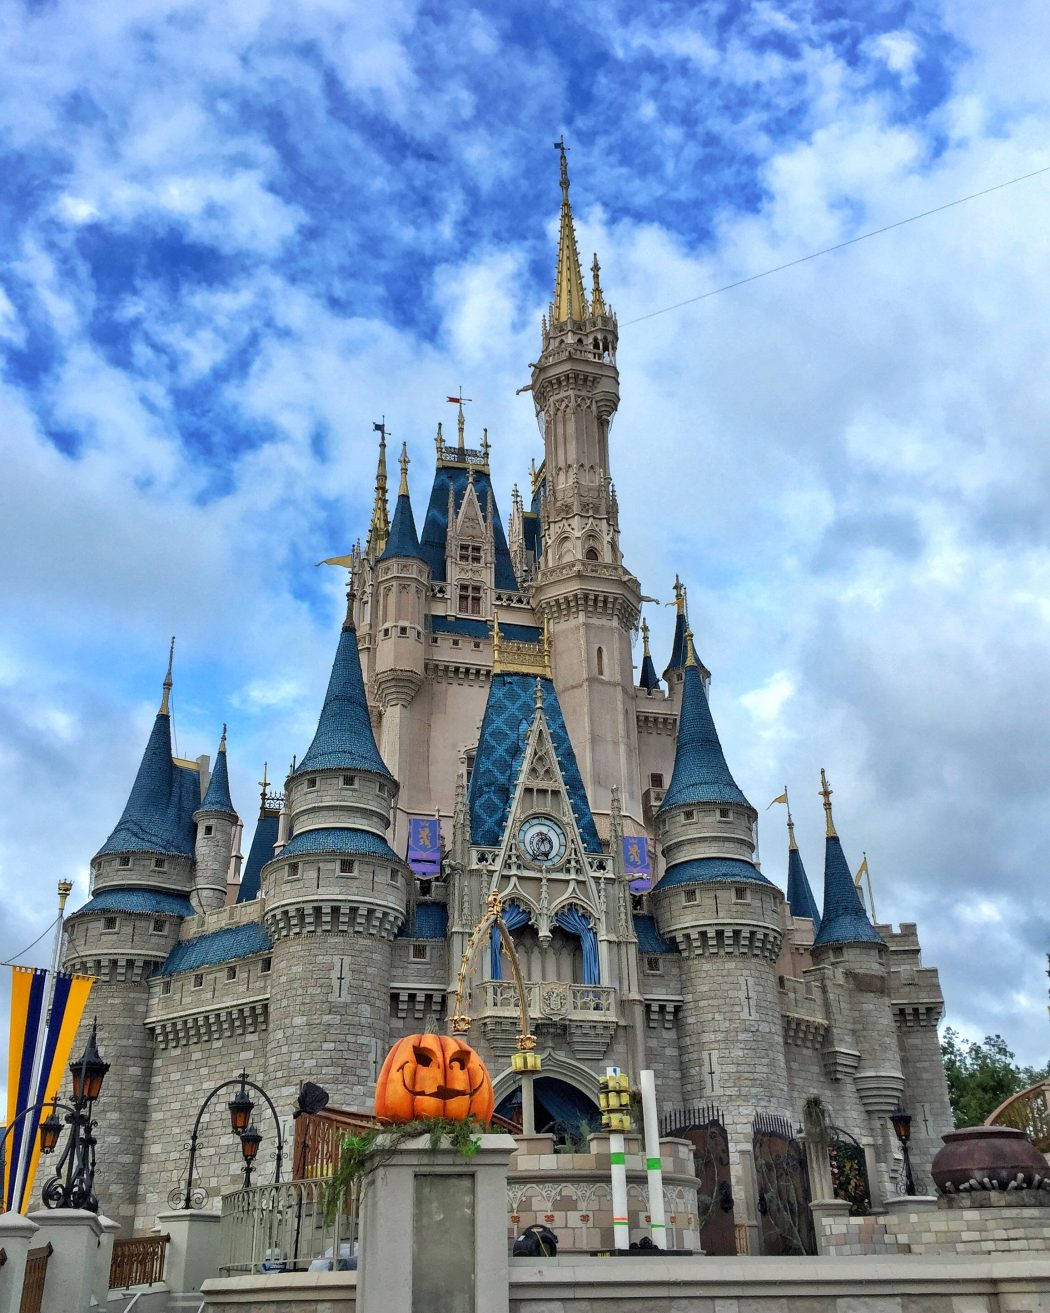 Mickey's Not So Scary Halloween Party in the Magic Kingdom